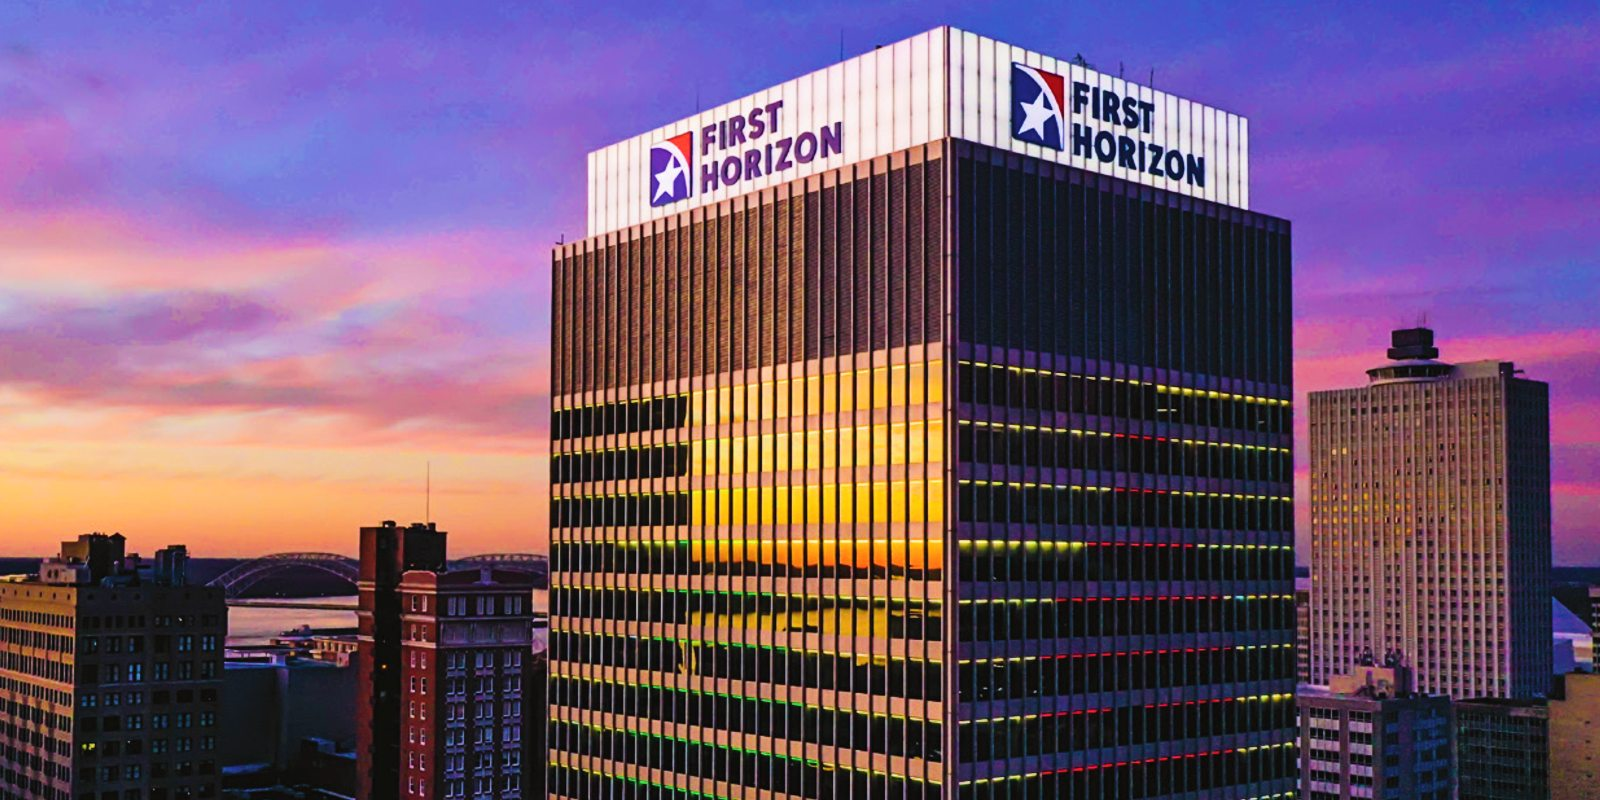 First Horizon bank online accounts hacked to steal customers' funds